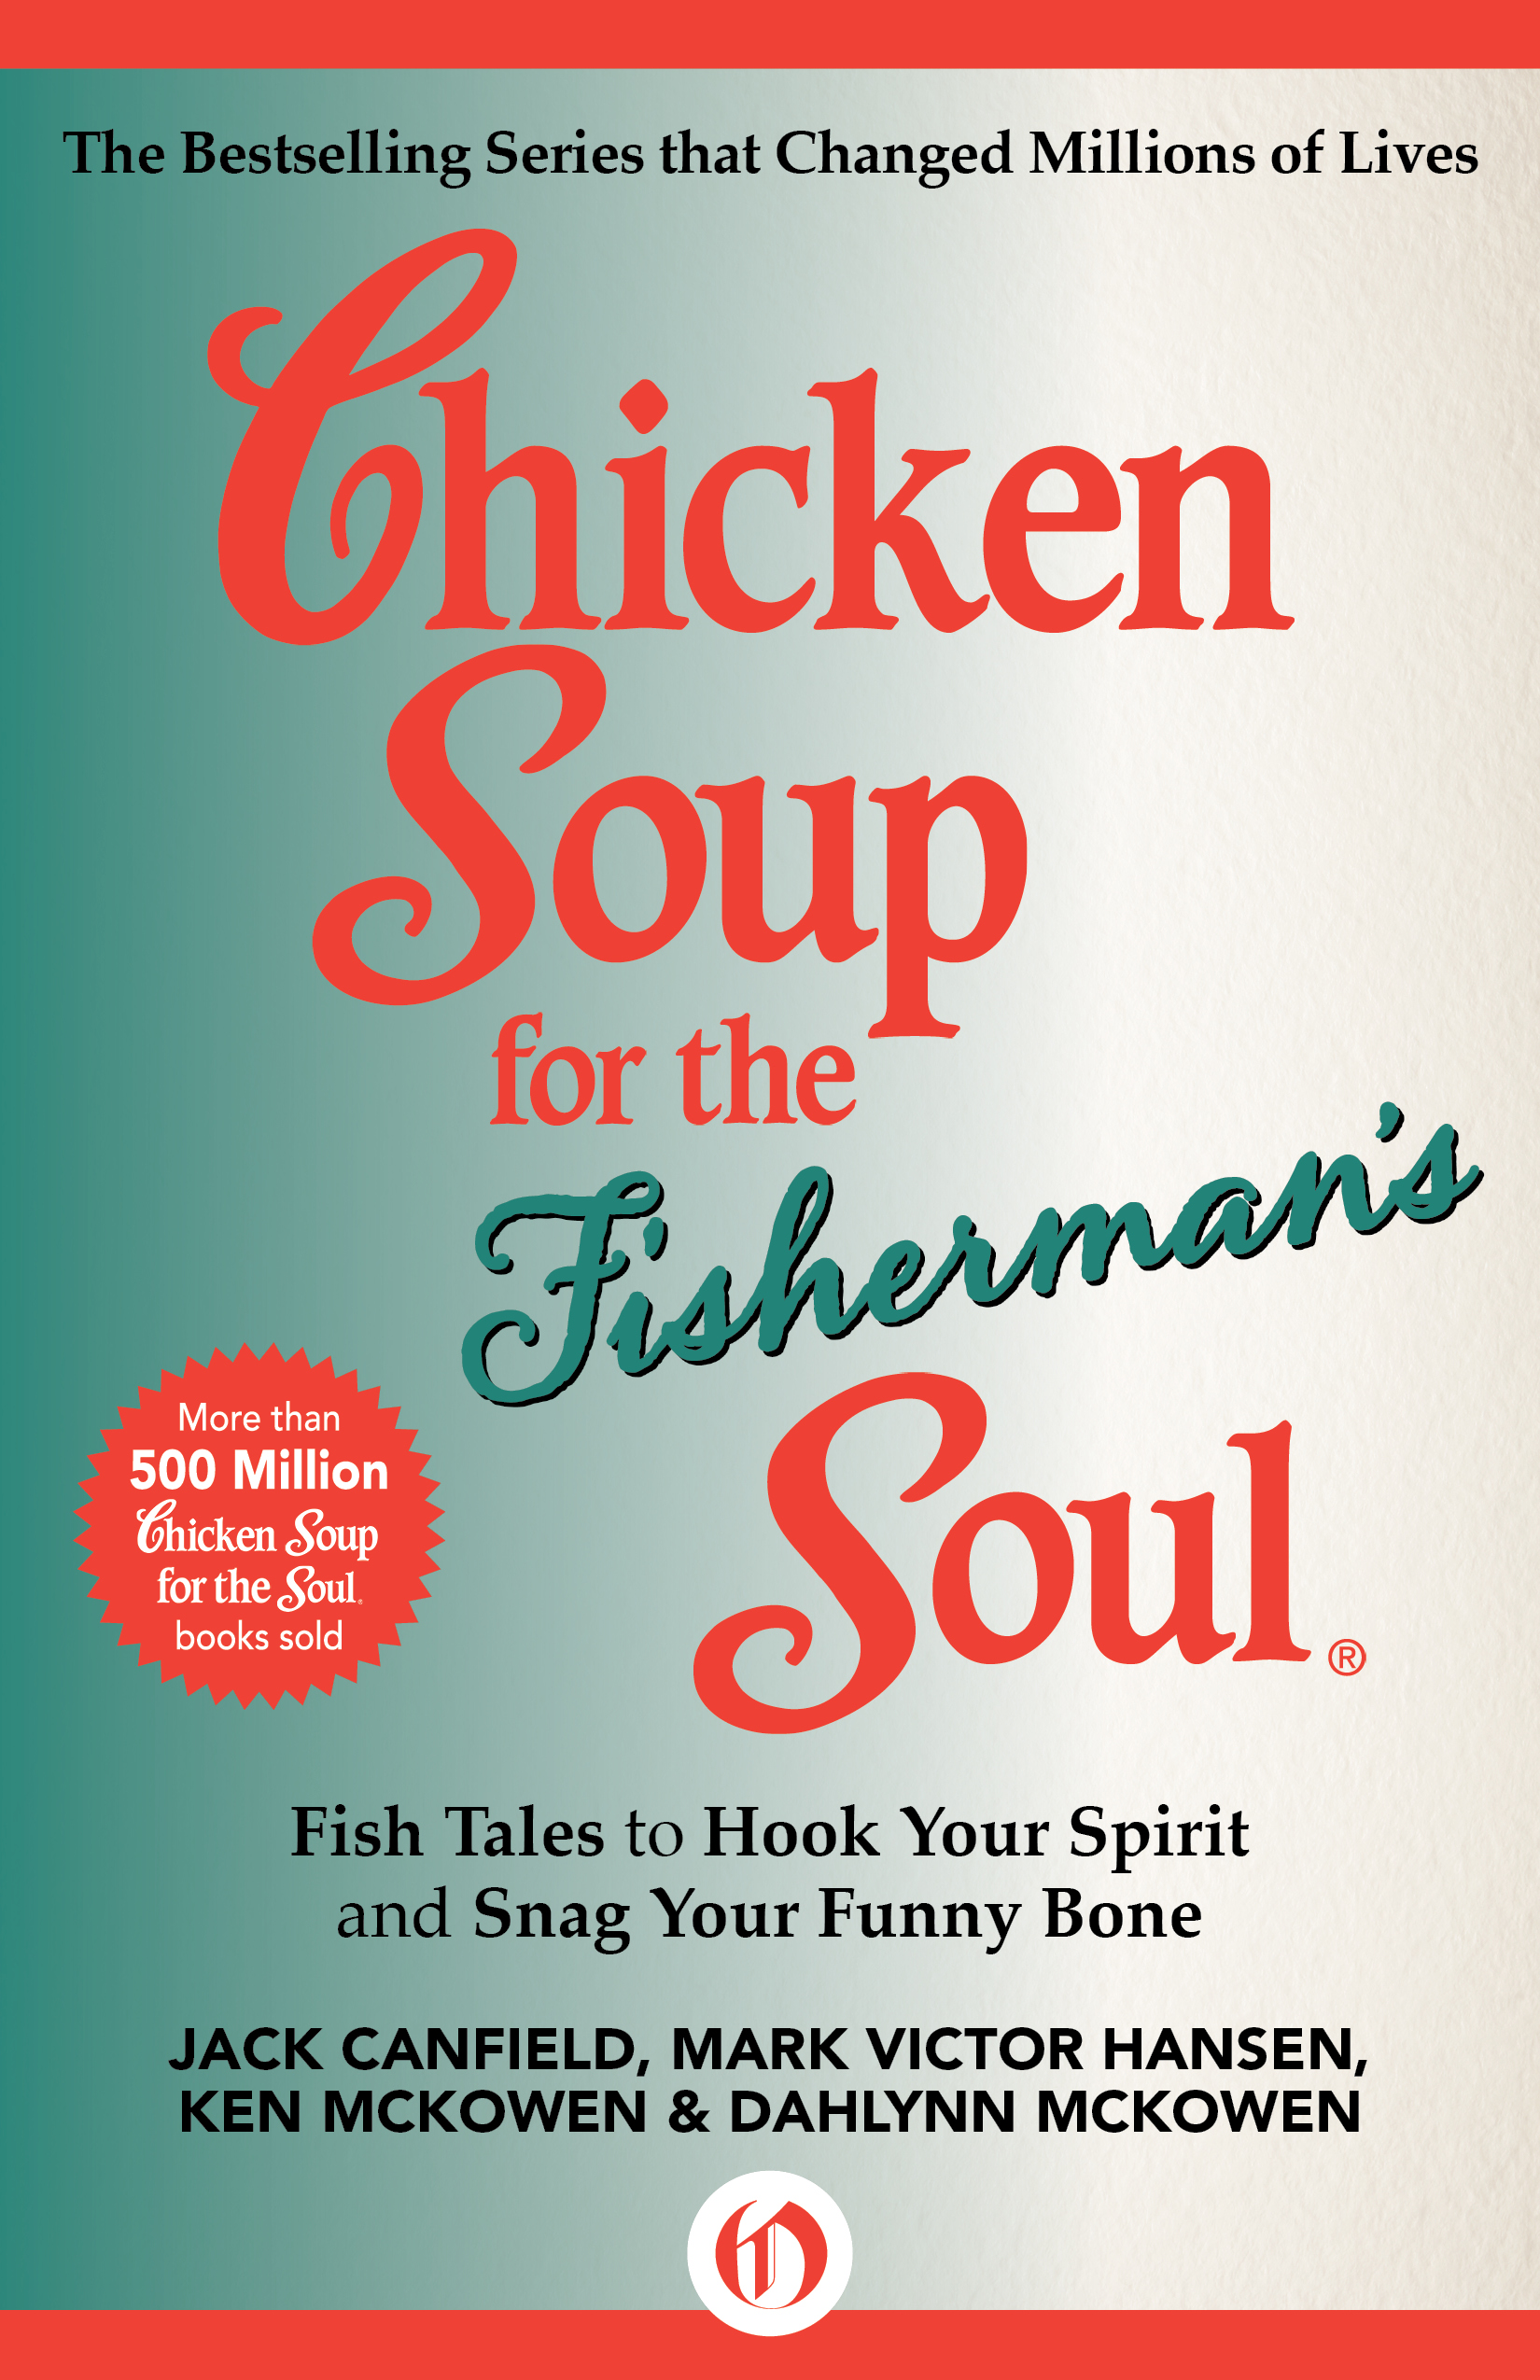 Chicken Soup for the Fisherman's Soul By: Dahlynn McKowen,Jack Canfield,Ken McKowen,Mark Victor Hansen